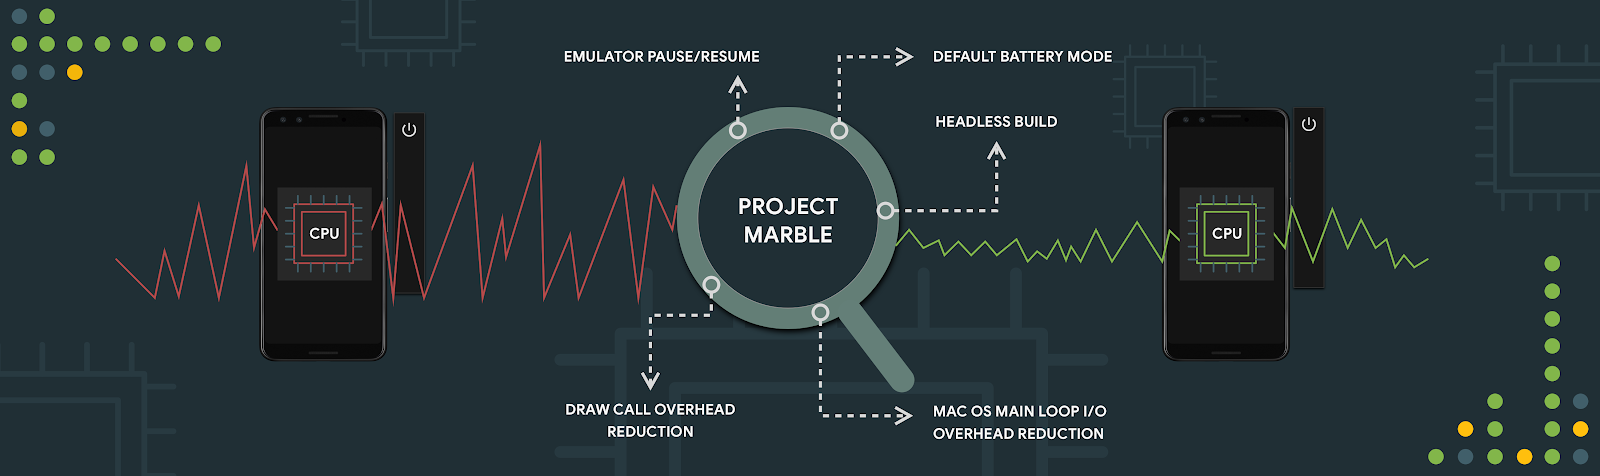 Android Emulator : Project Marble Improvements